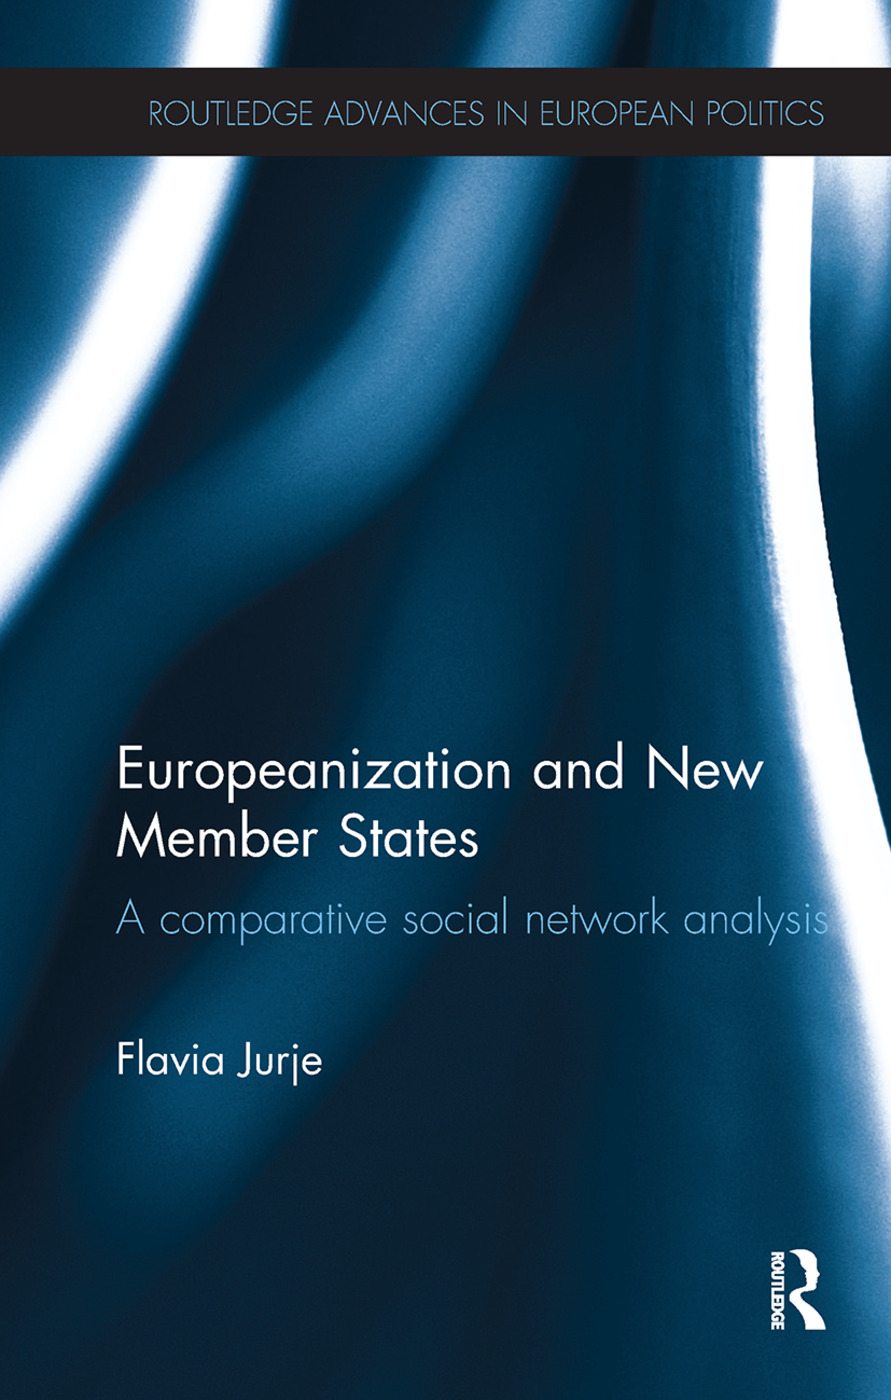 Europeanization and New Member States